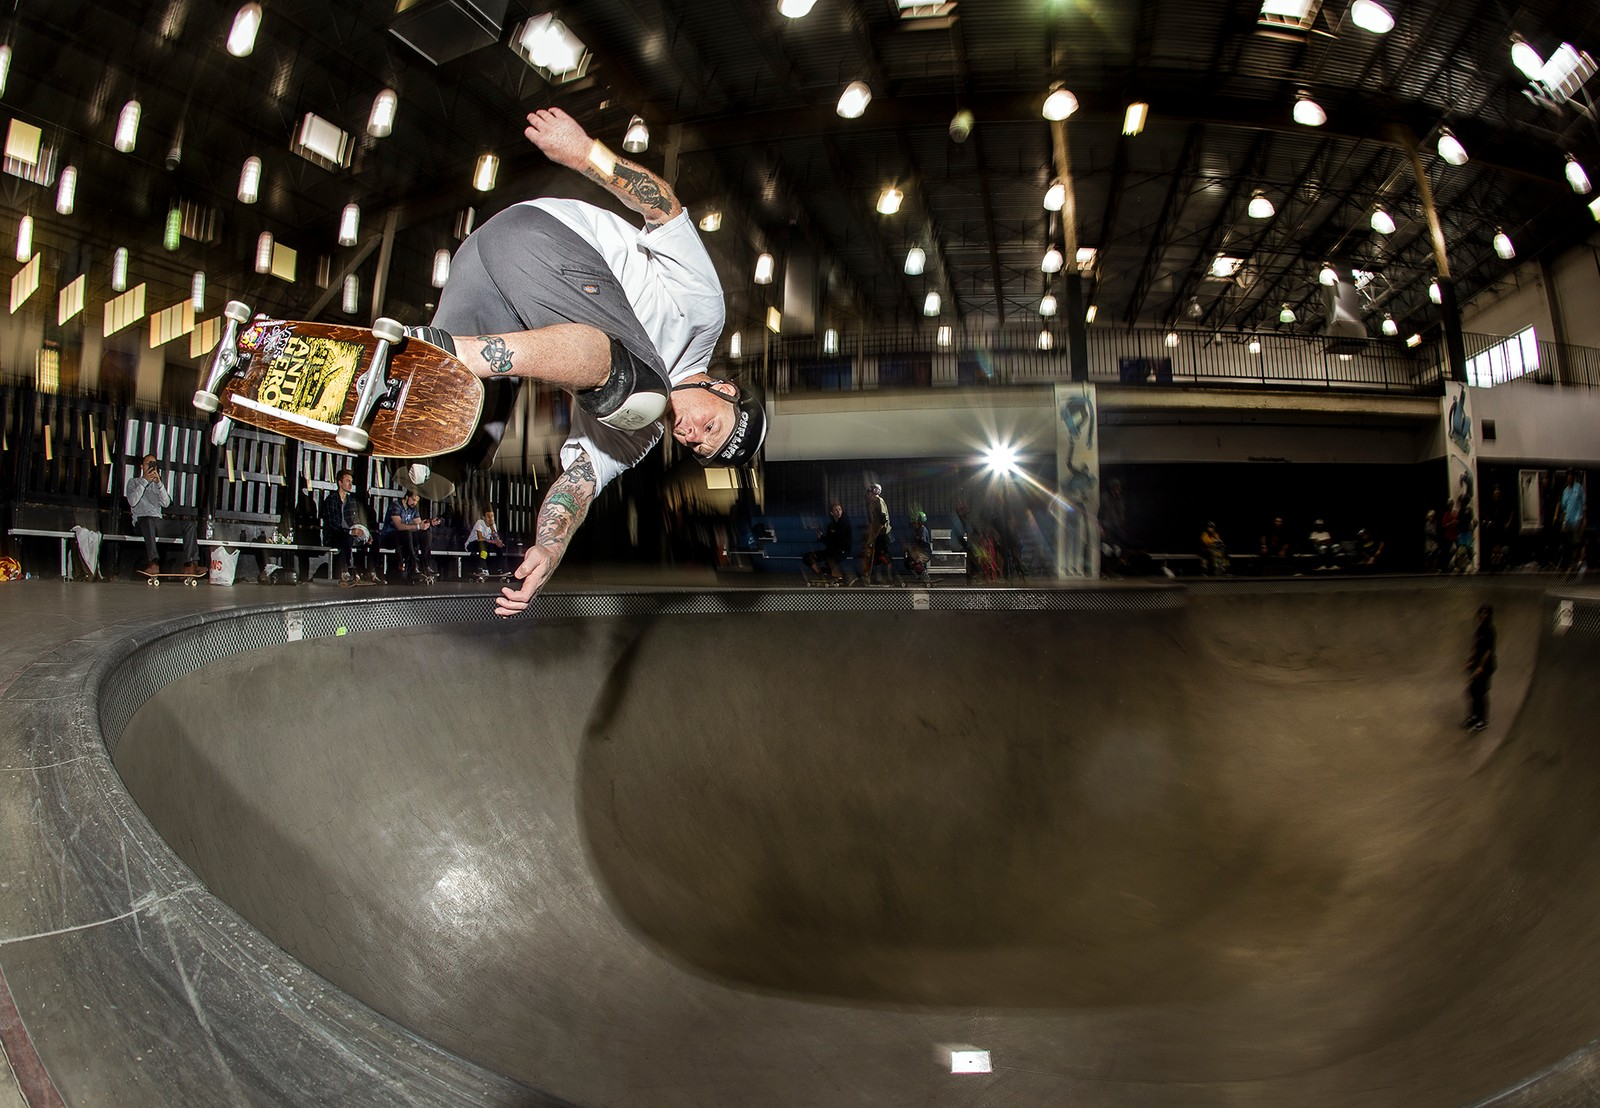 Jeff Grosso R.I.P.—Photos By Dave Swift